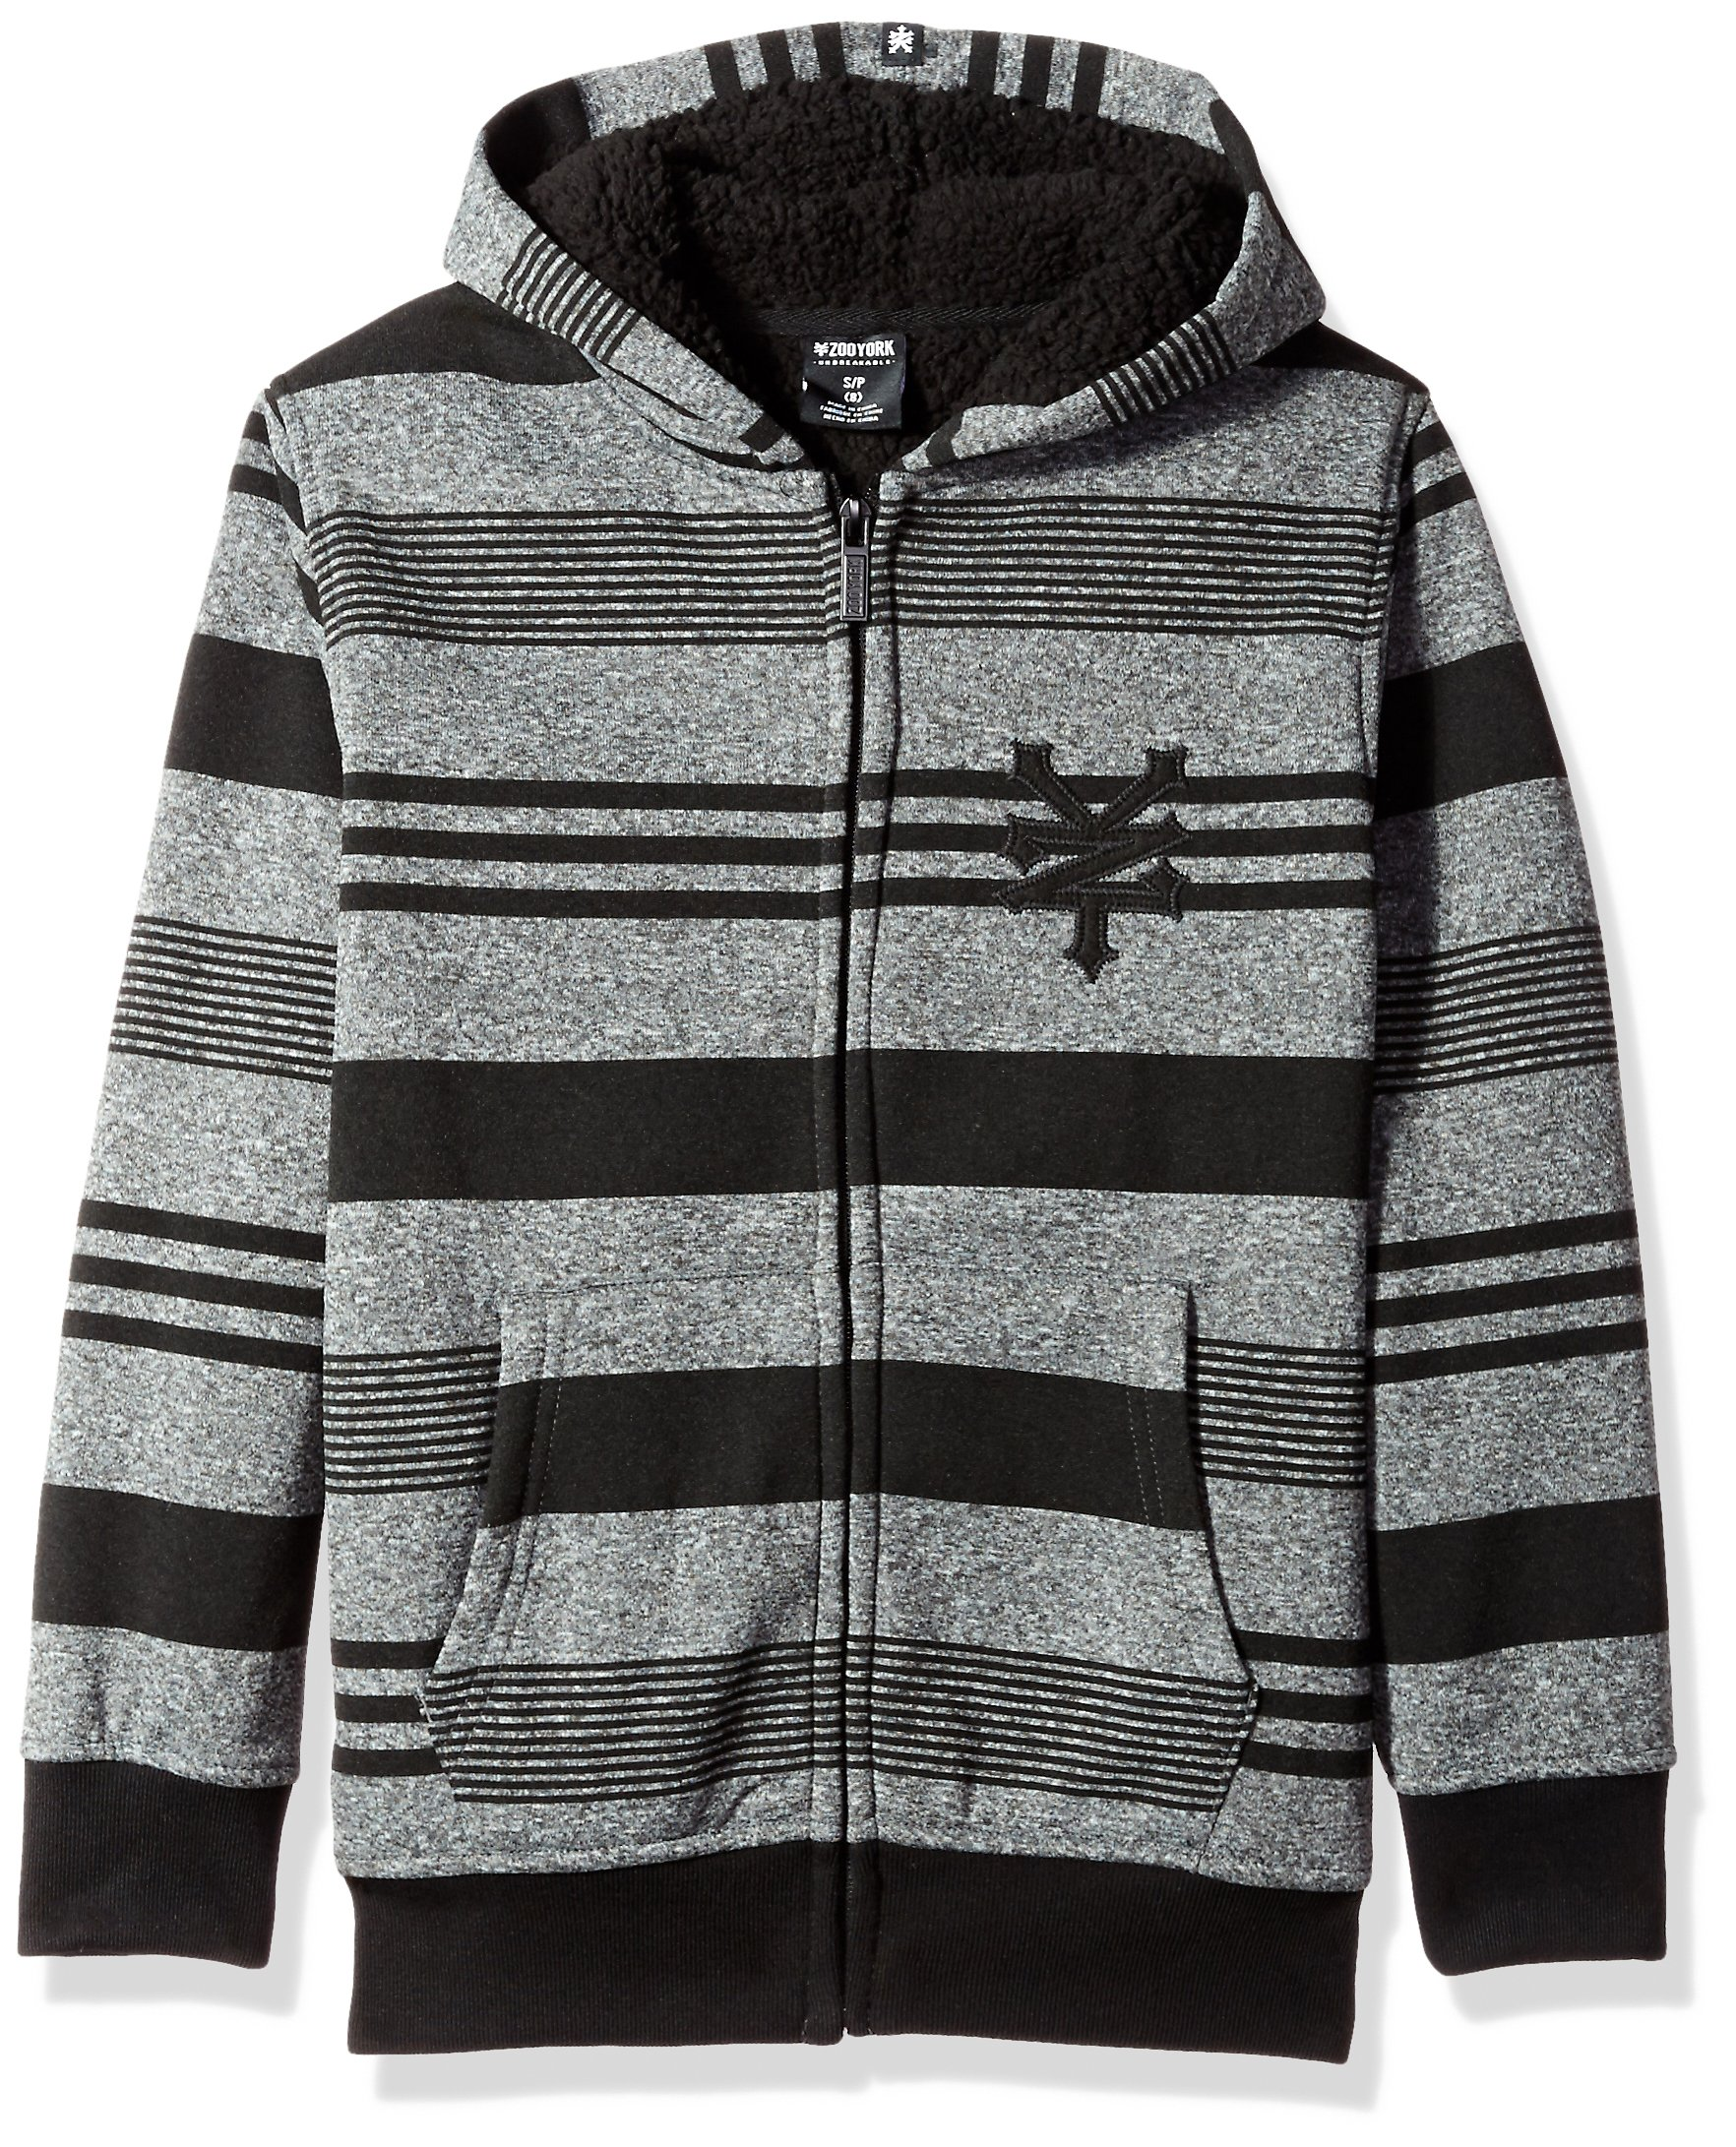 Zoo York Big Boys' Hoodie With Sherpa Lining, Lineage Black Heather, Small (8)